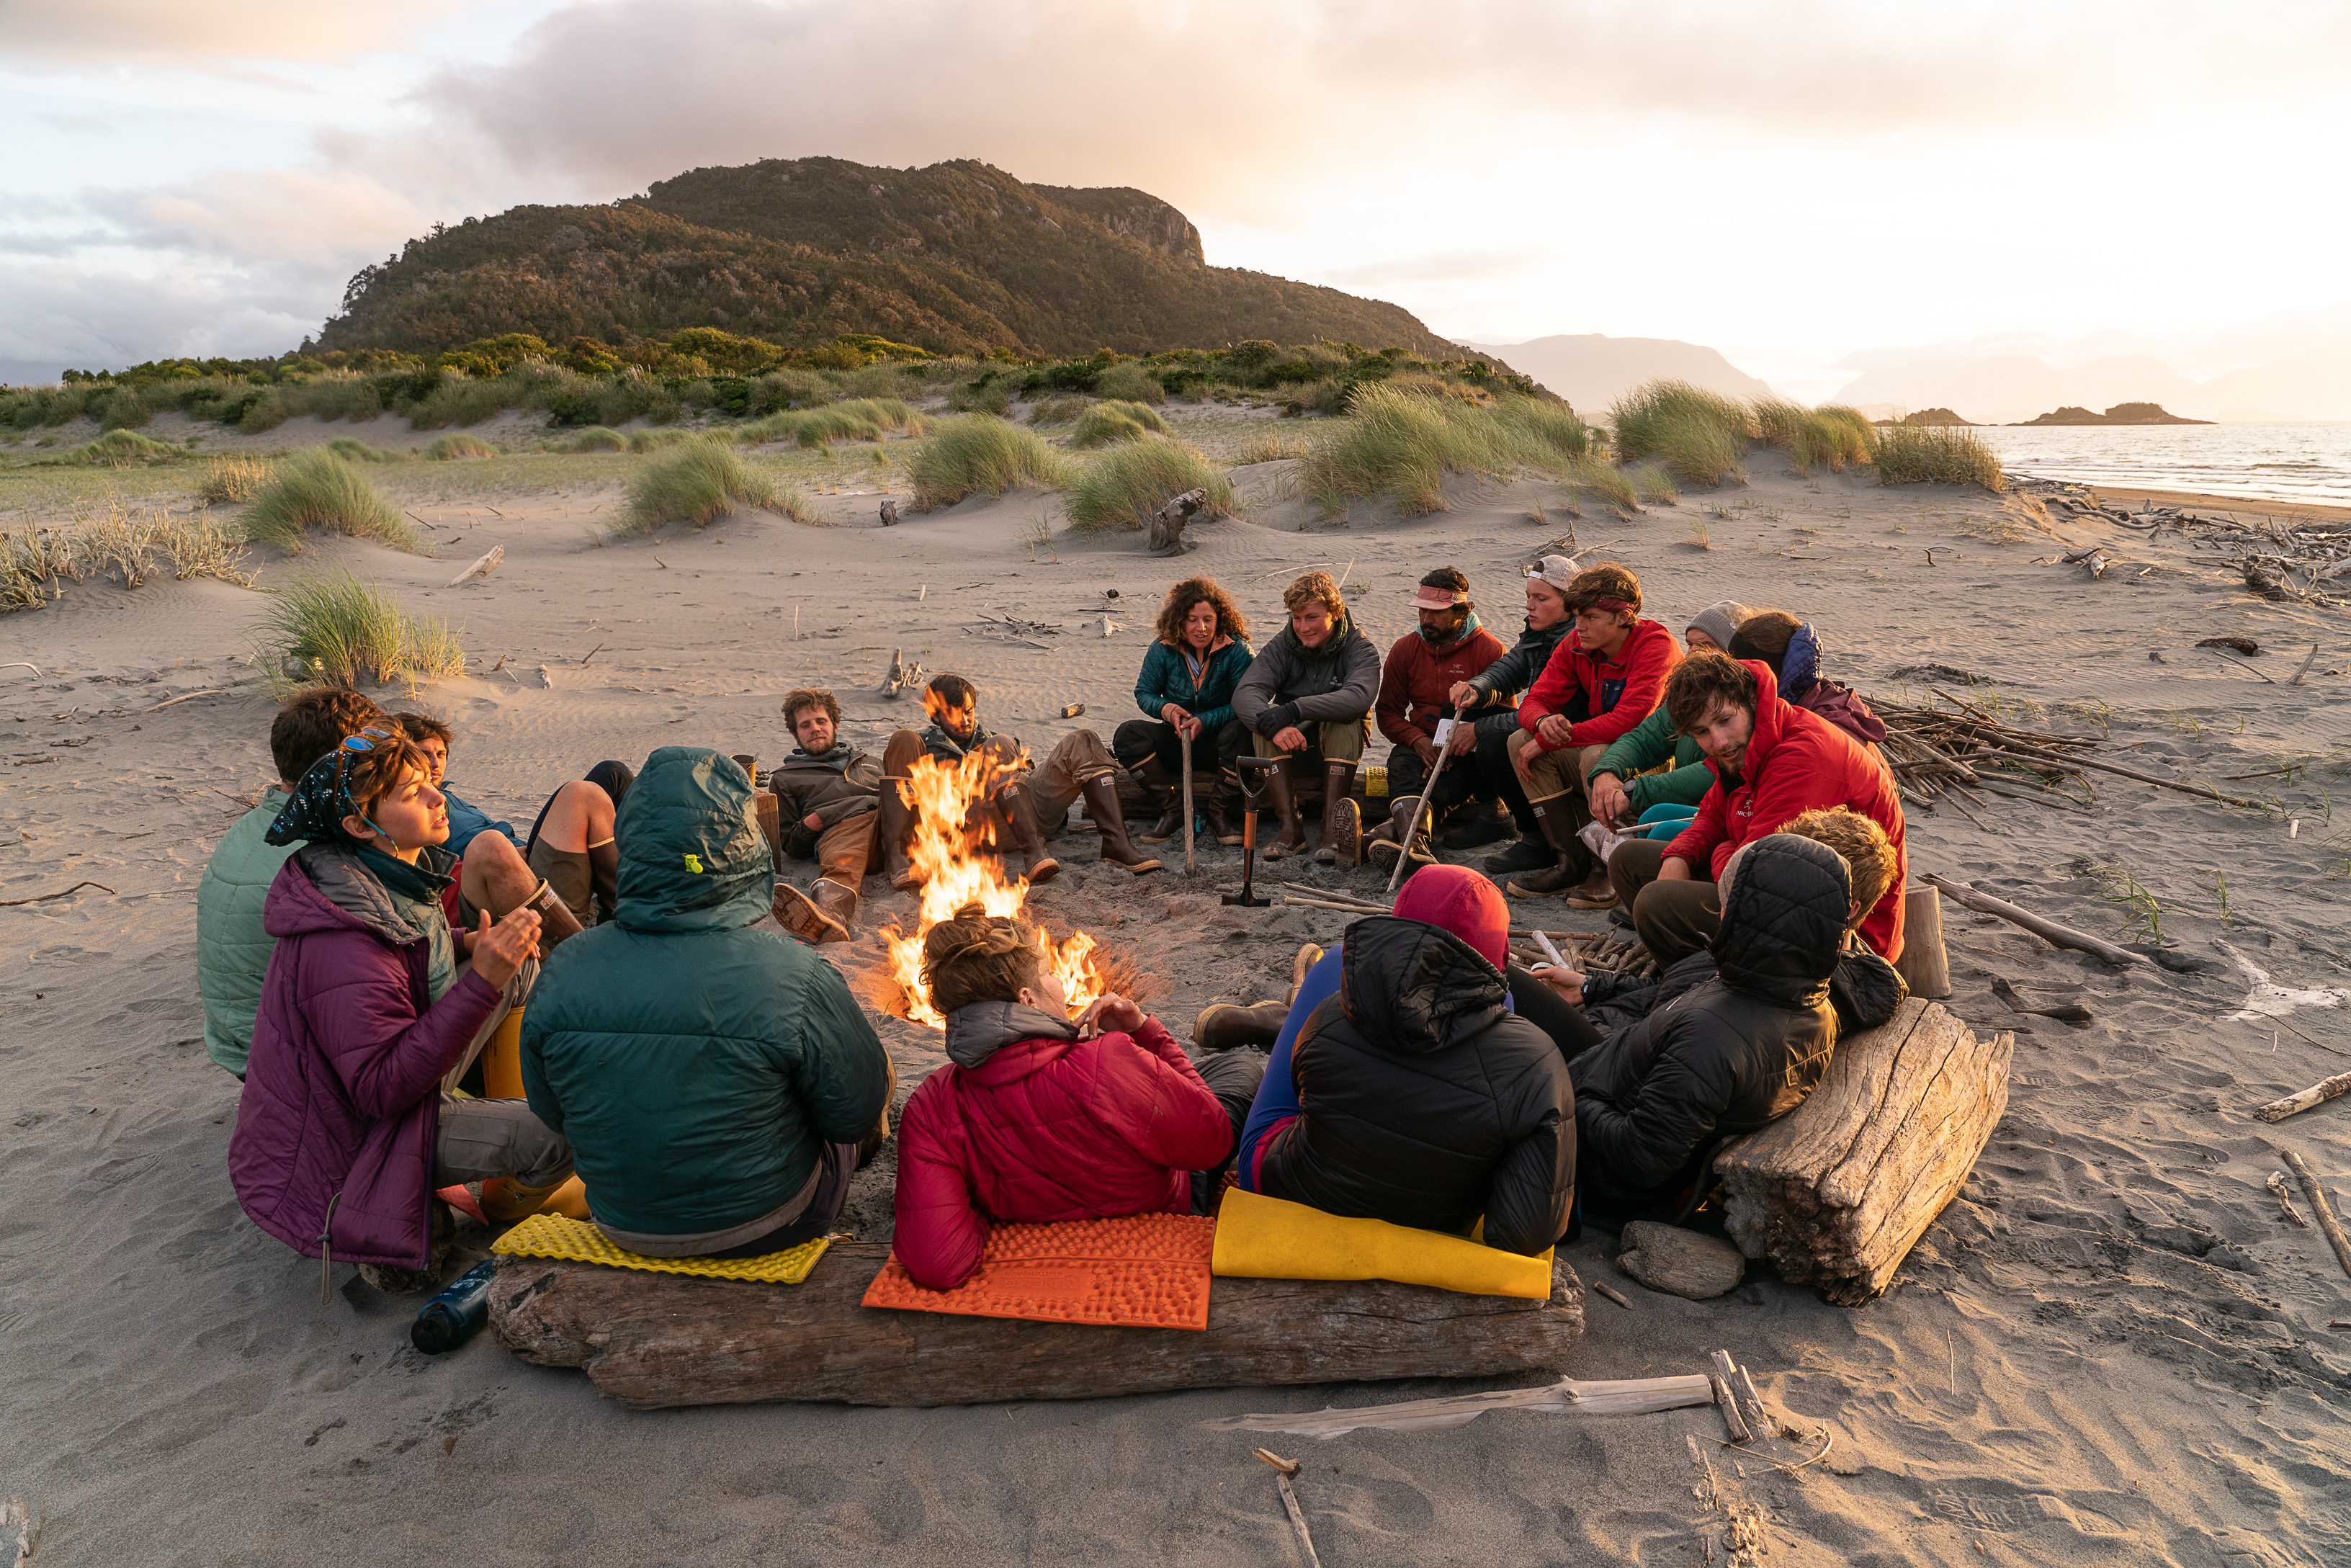 Group of students sitting in a circle around a fire on a beach in Patagonia at sunset